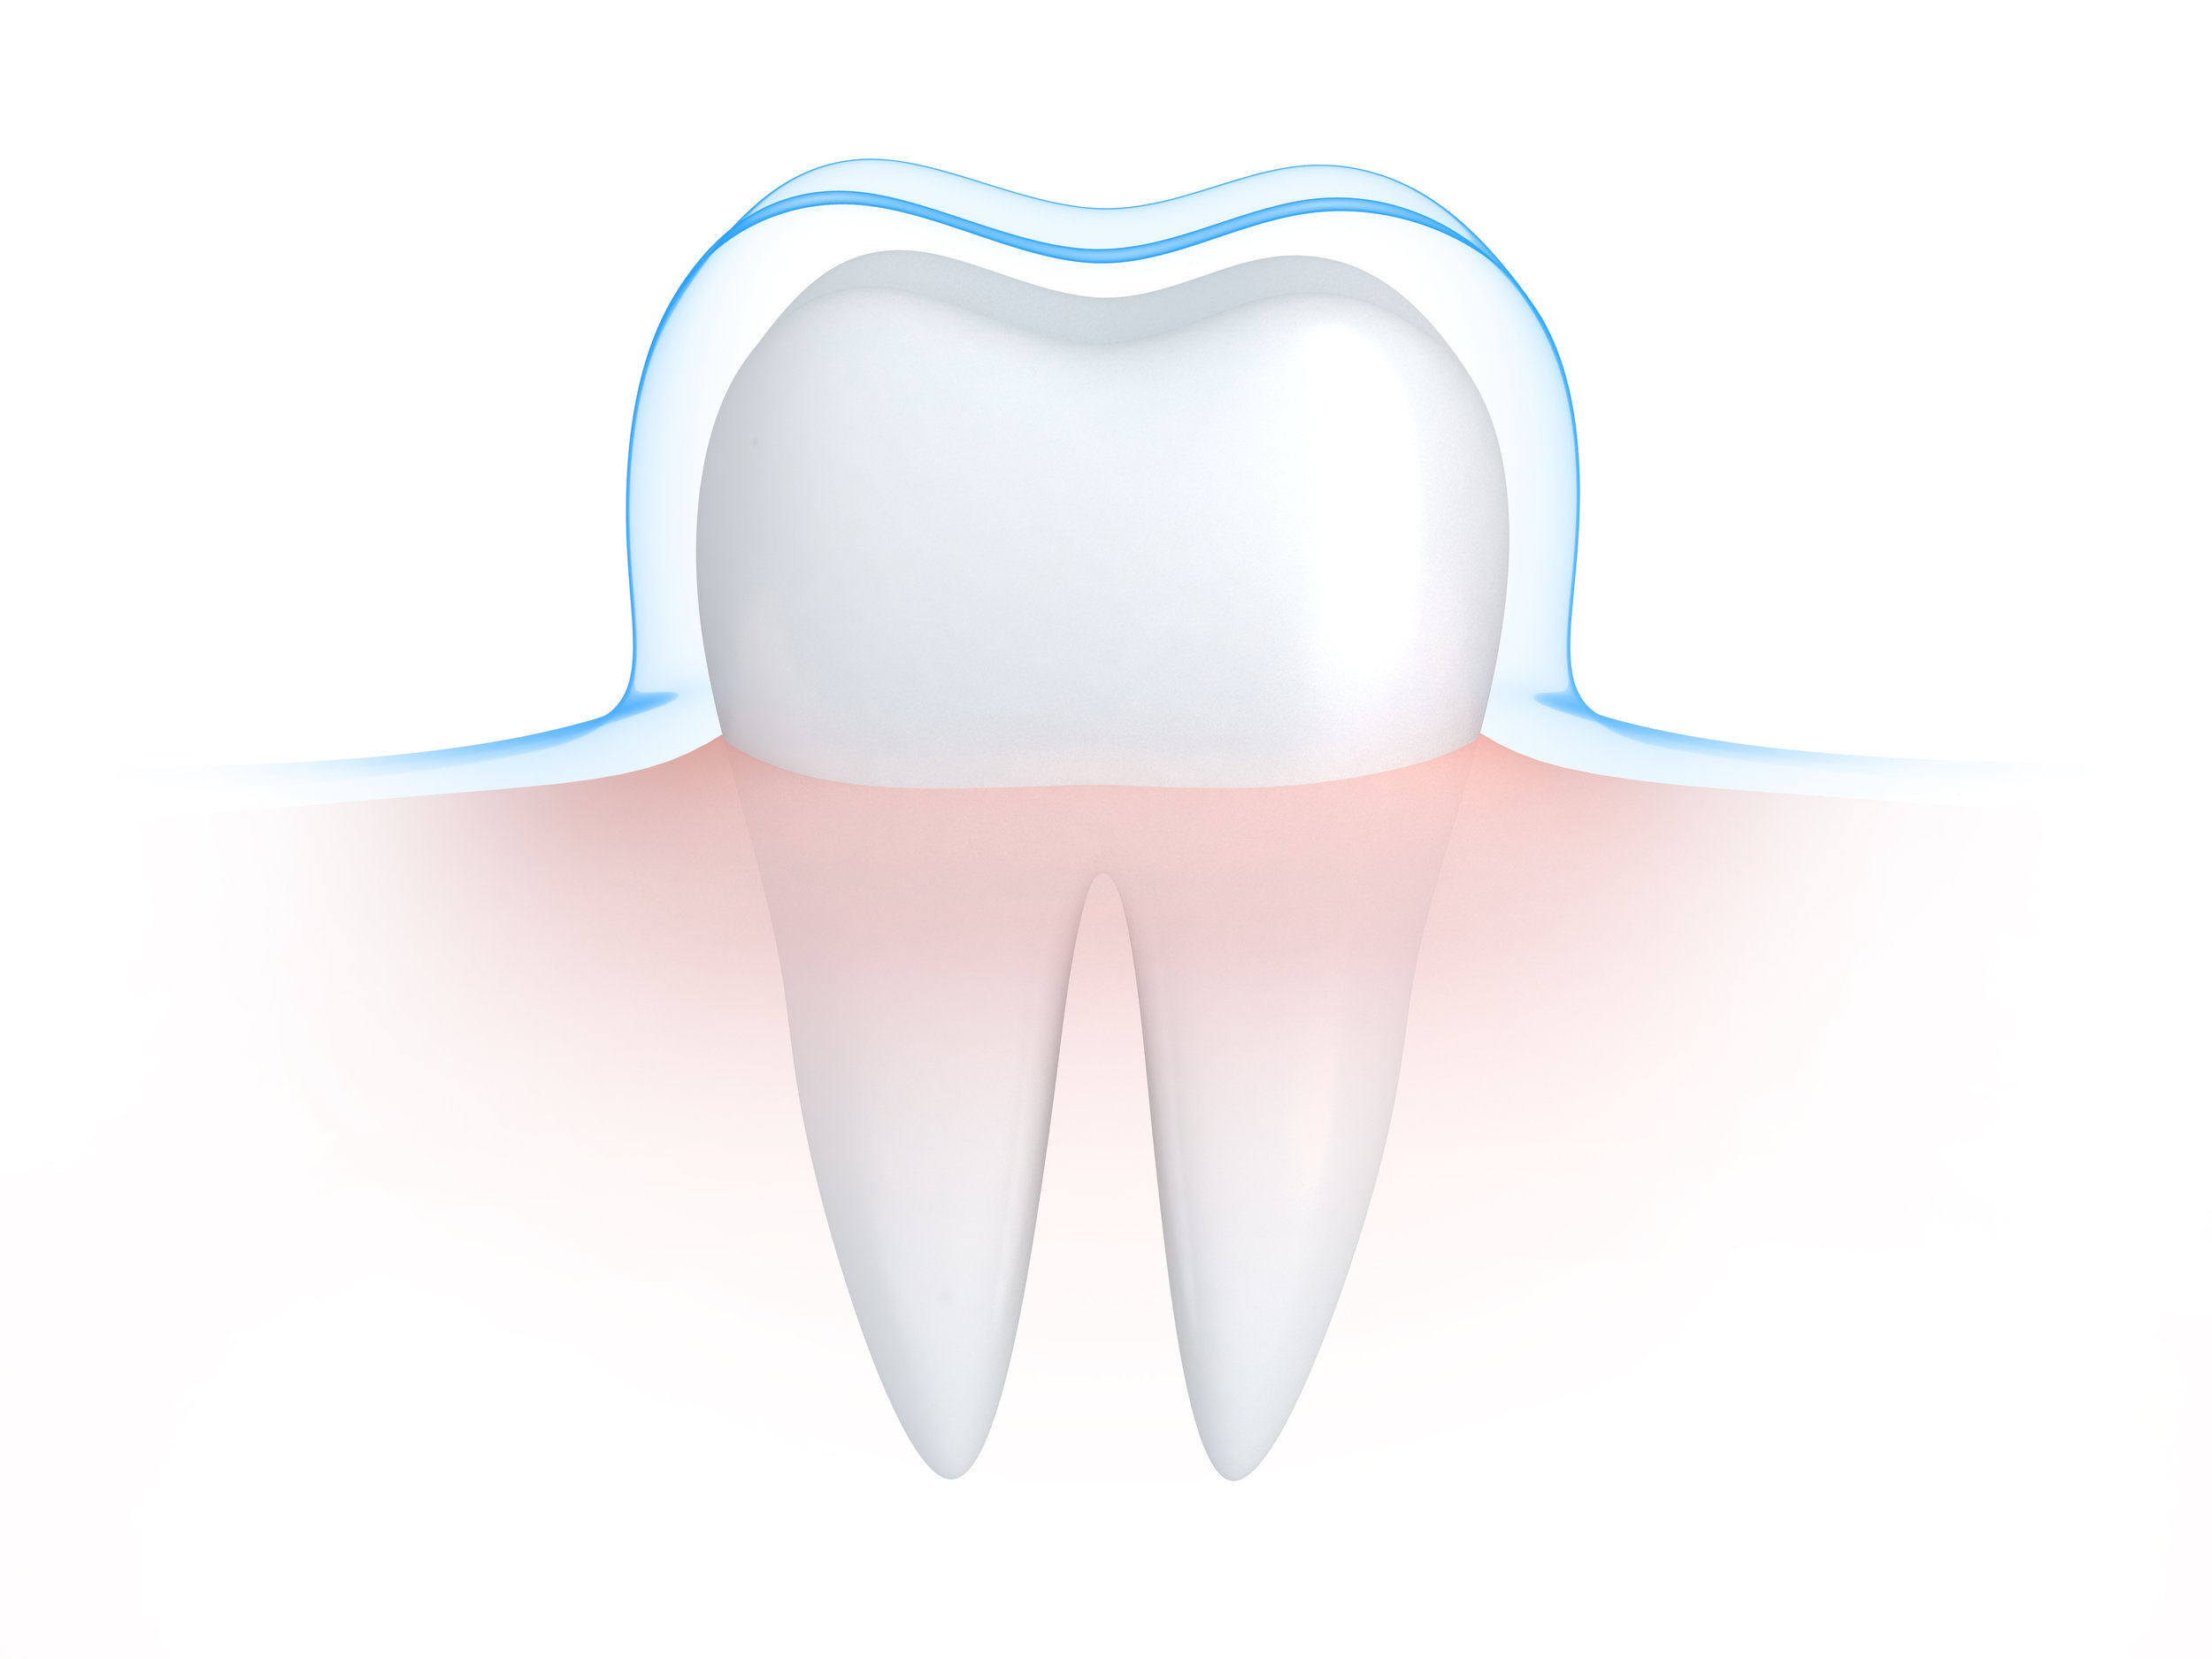 Sealants are often applied at a young age to protect teeth from cavities and decay.